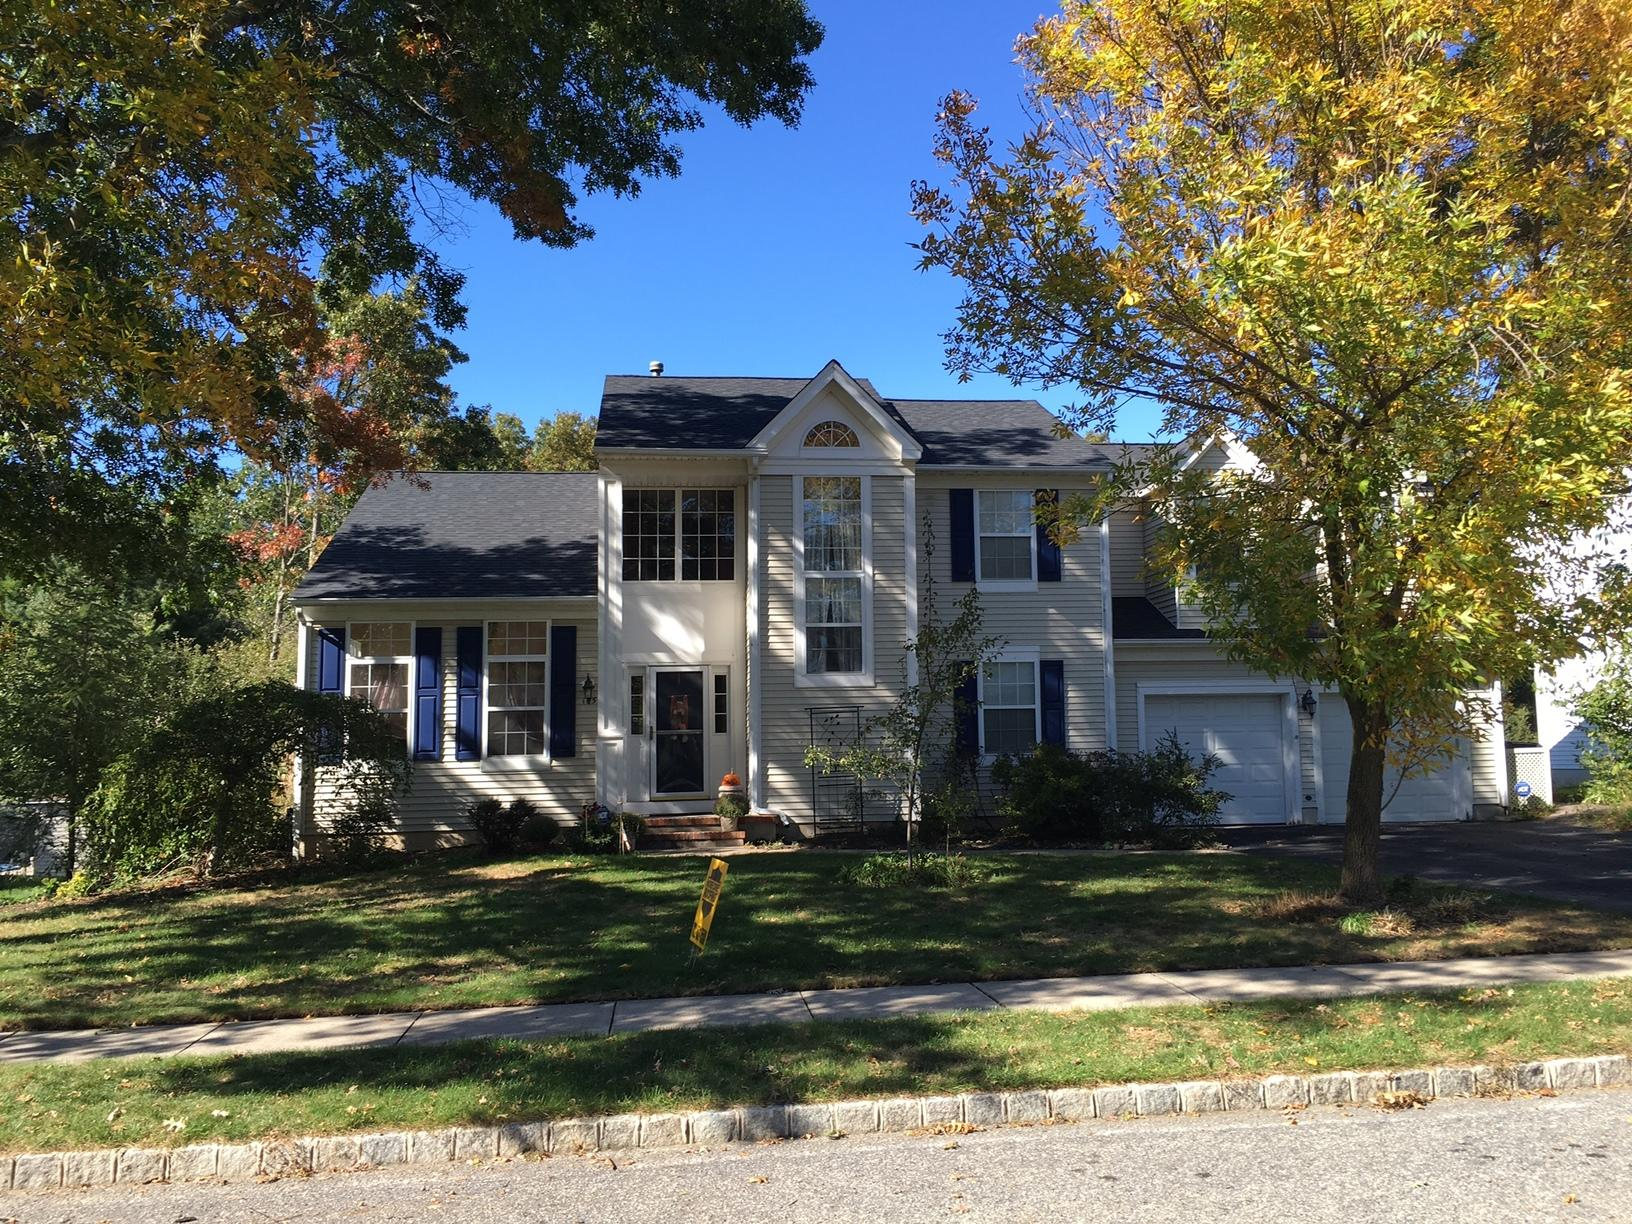 Roof Replacement in Toms River NJ